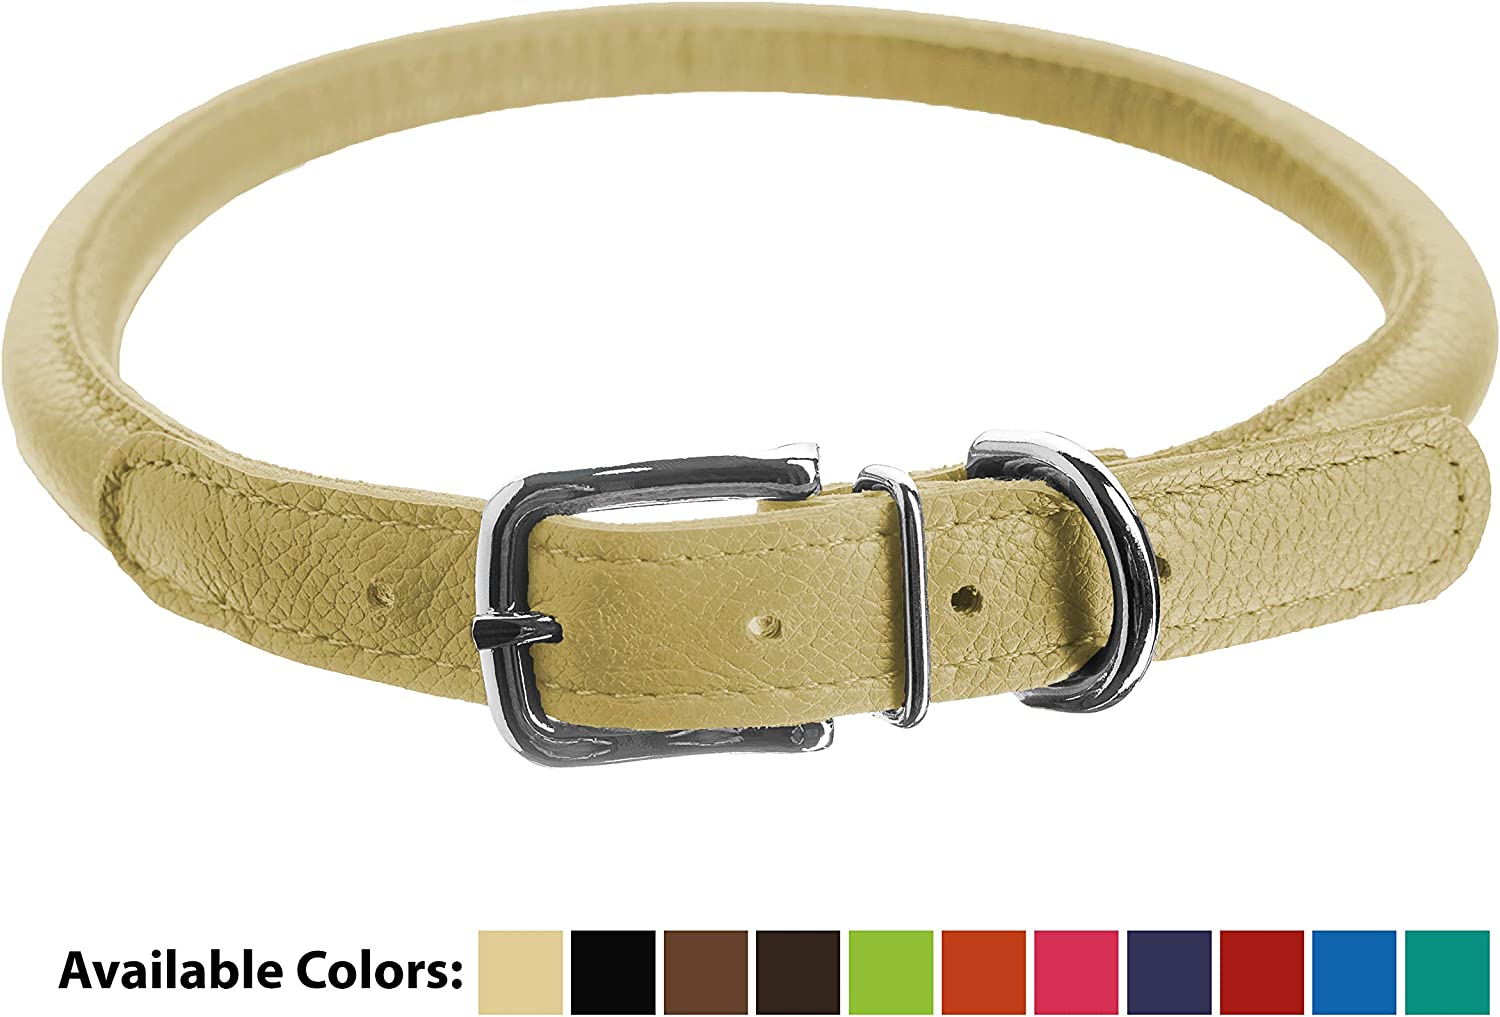 Dogline 1 2Inch Wide Soft Padded Rolled Round Leather Dog Collar, 19 to 22Inch Length, Beige